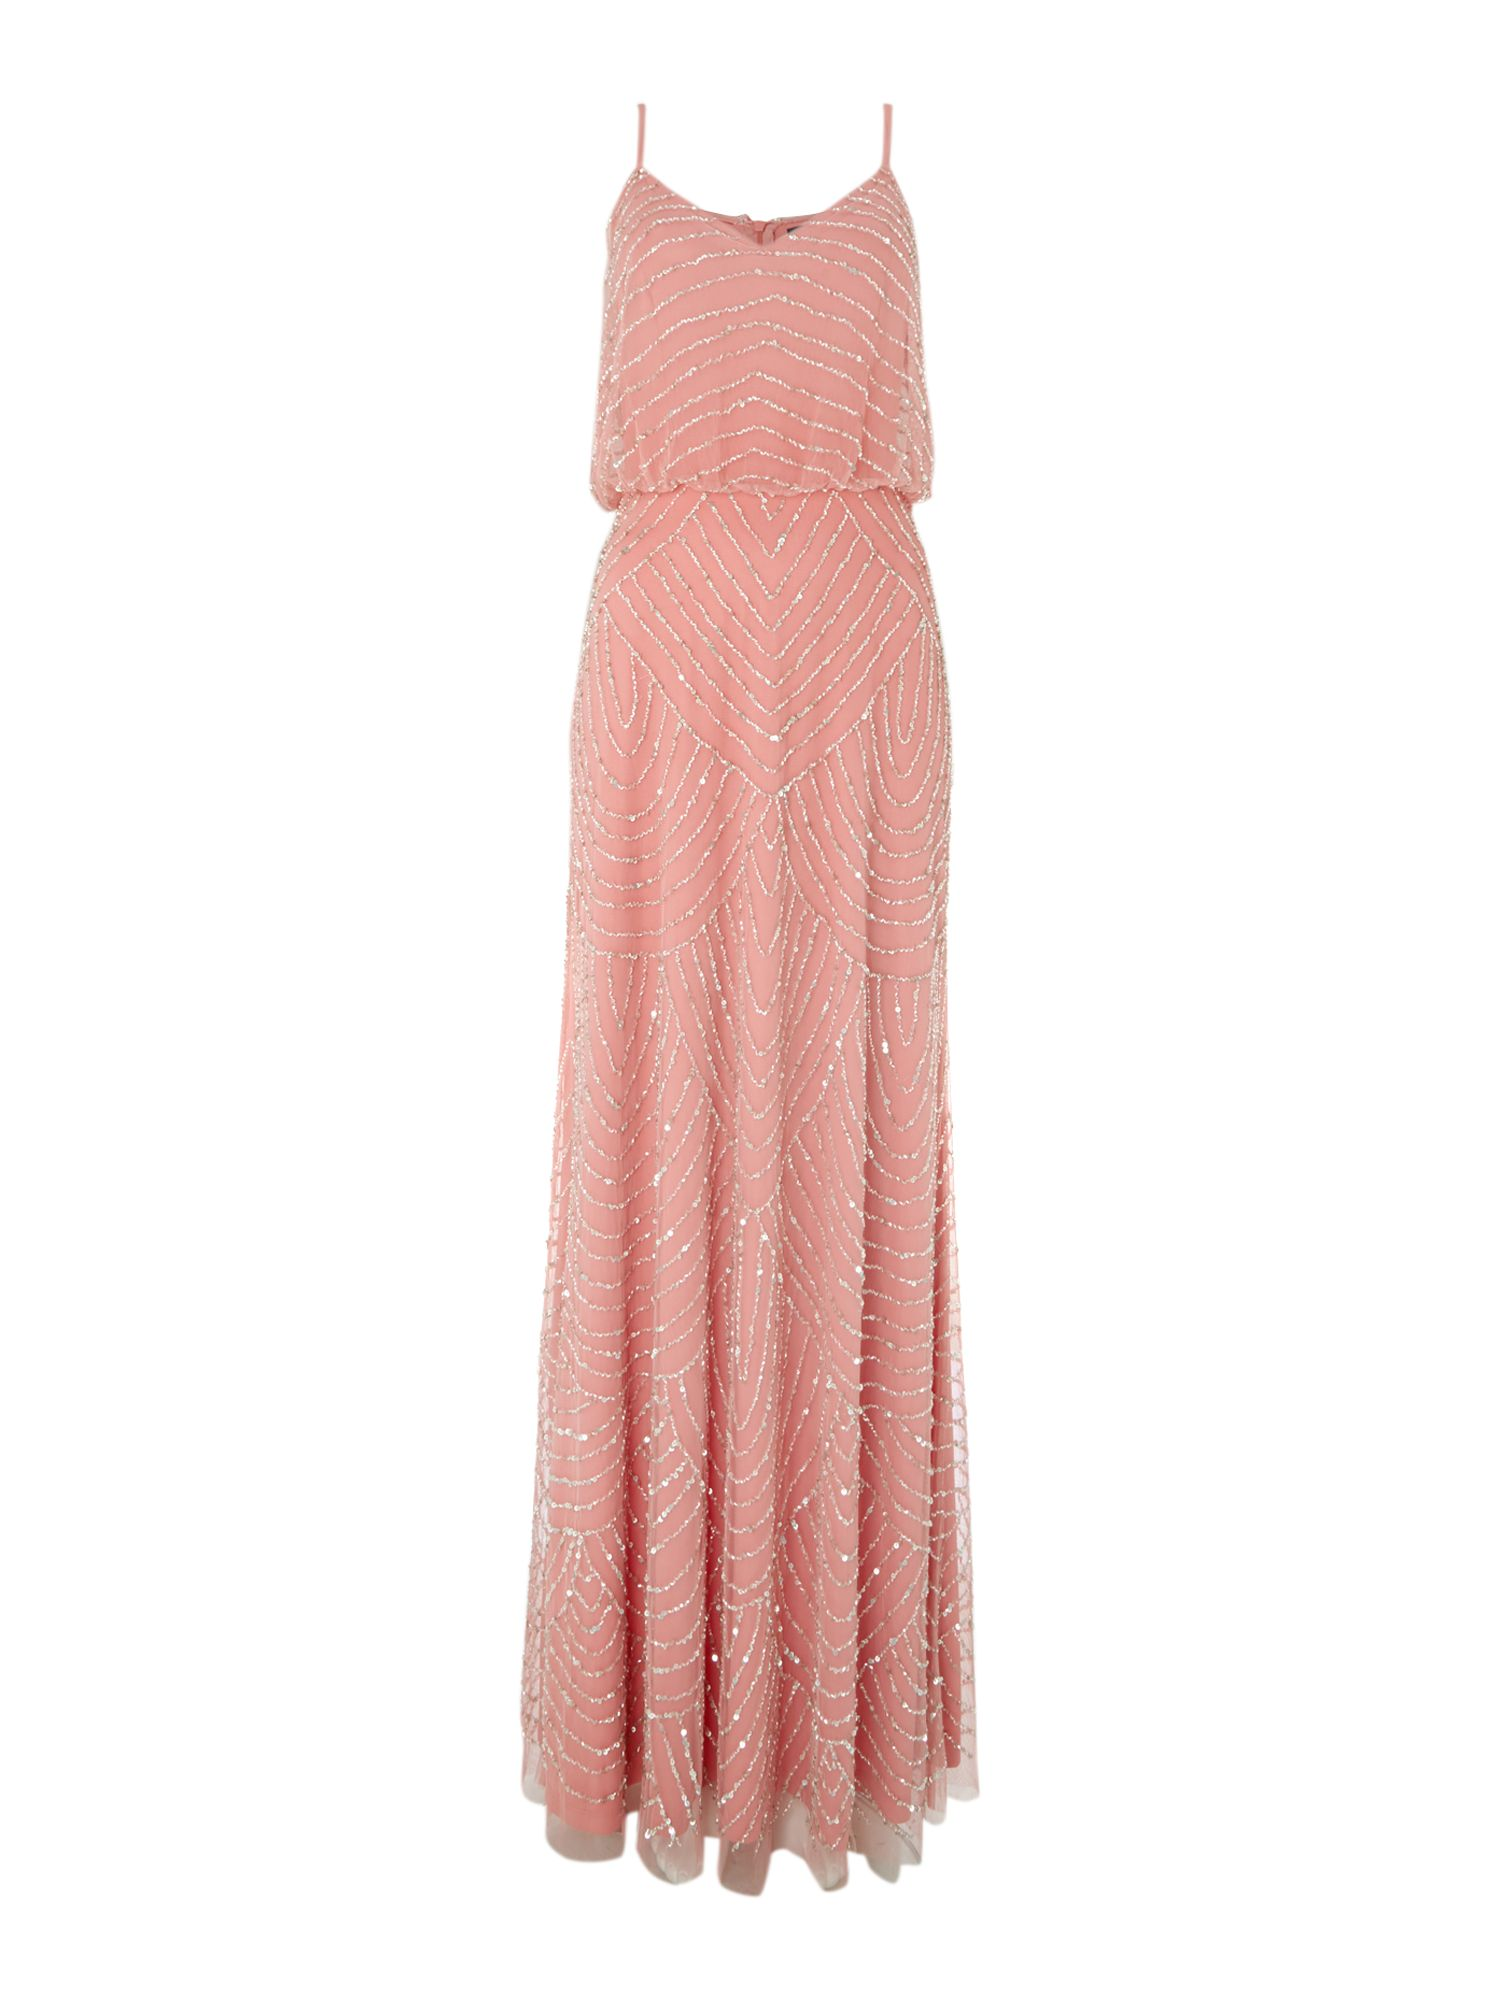 Art deco beaded dress